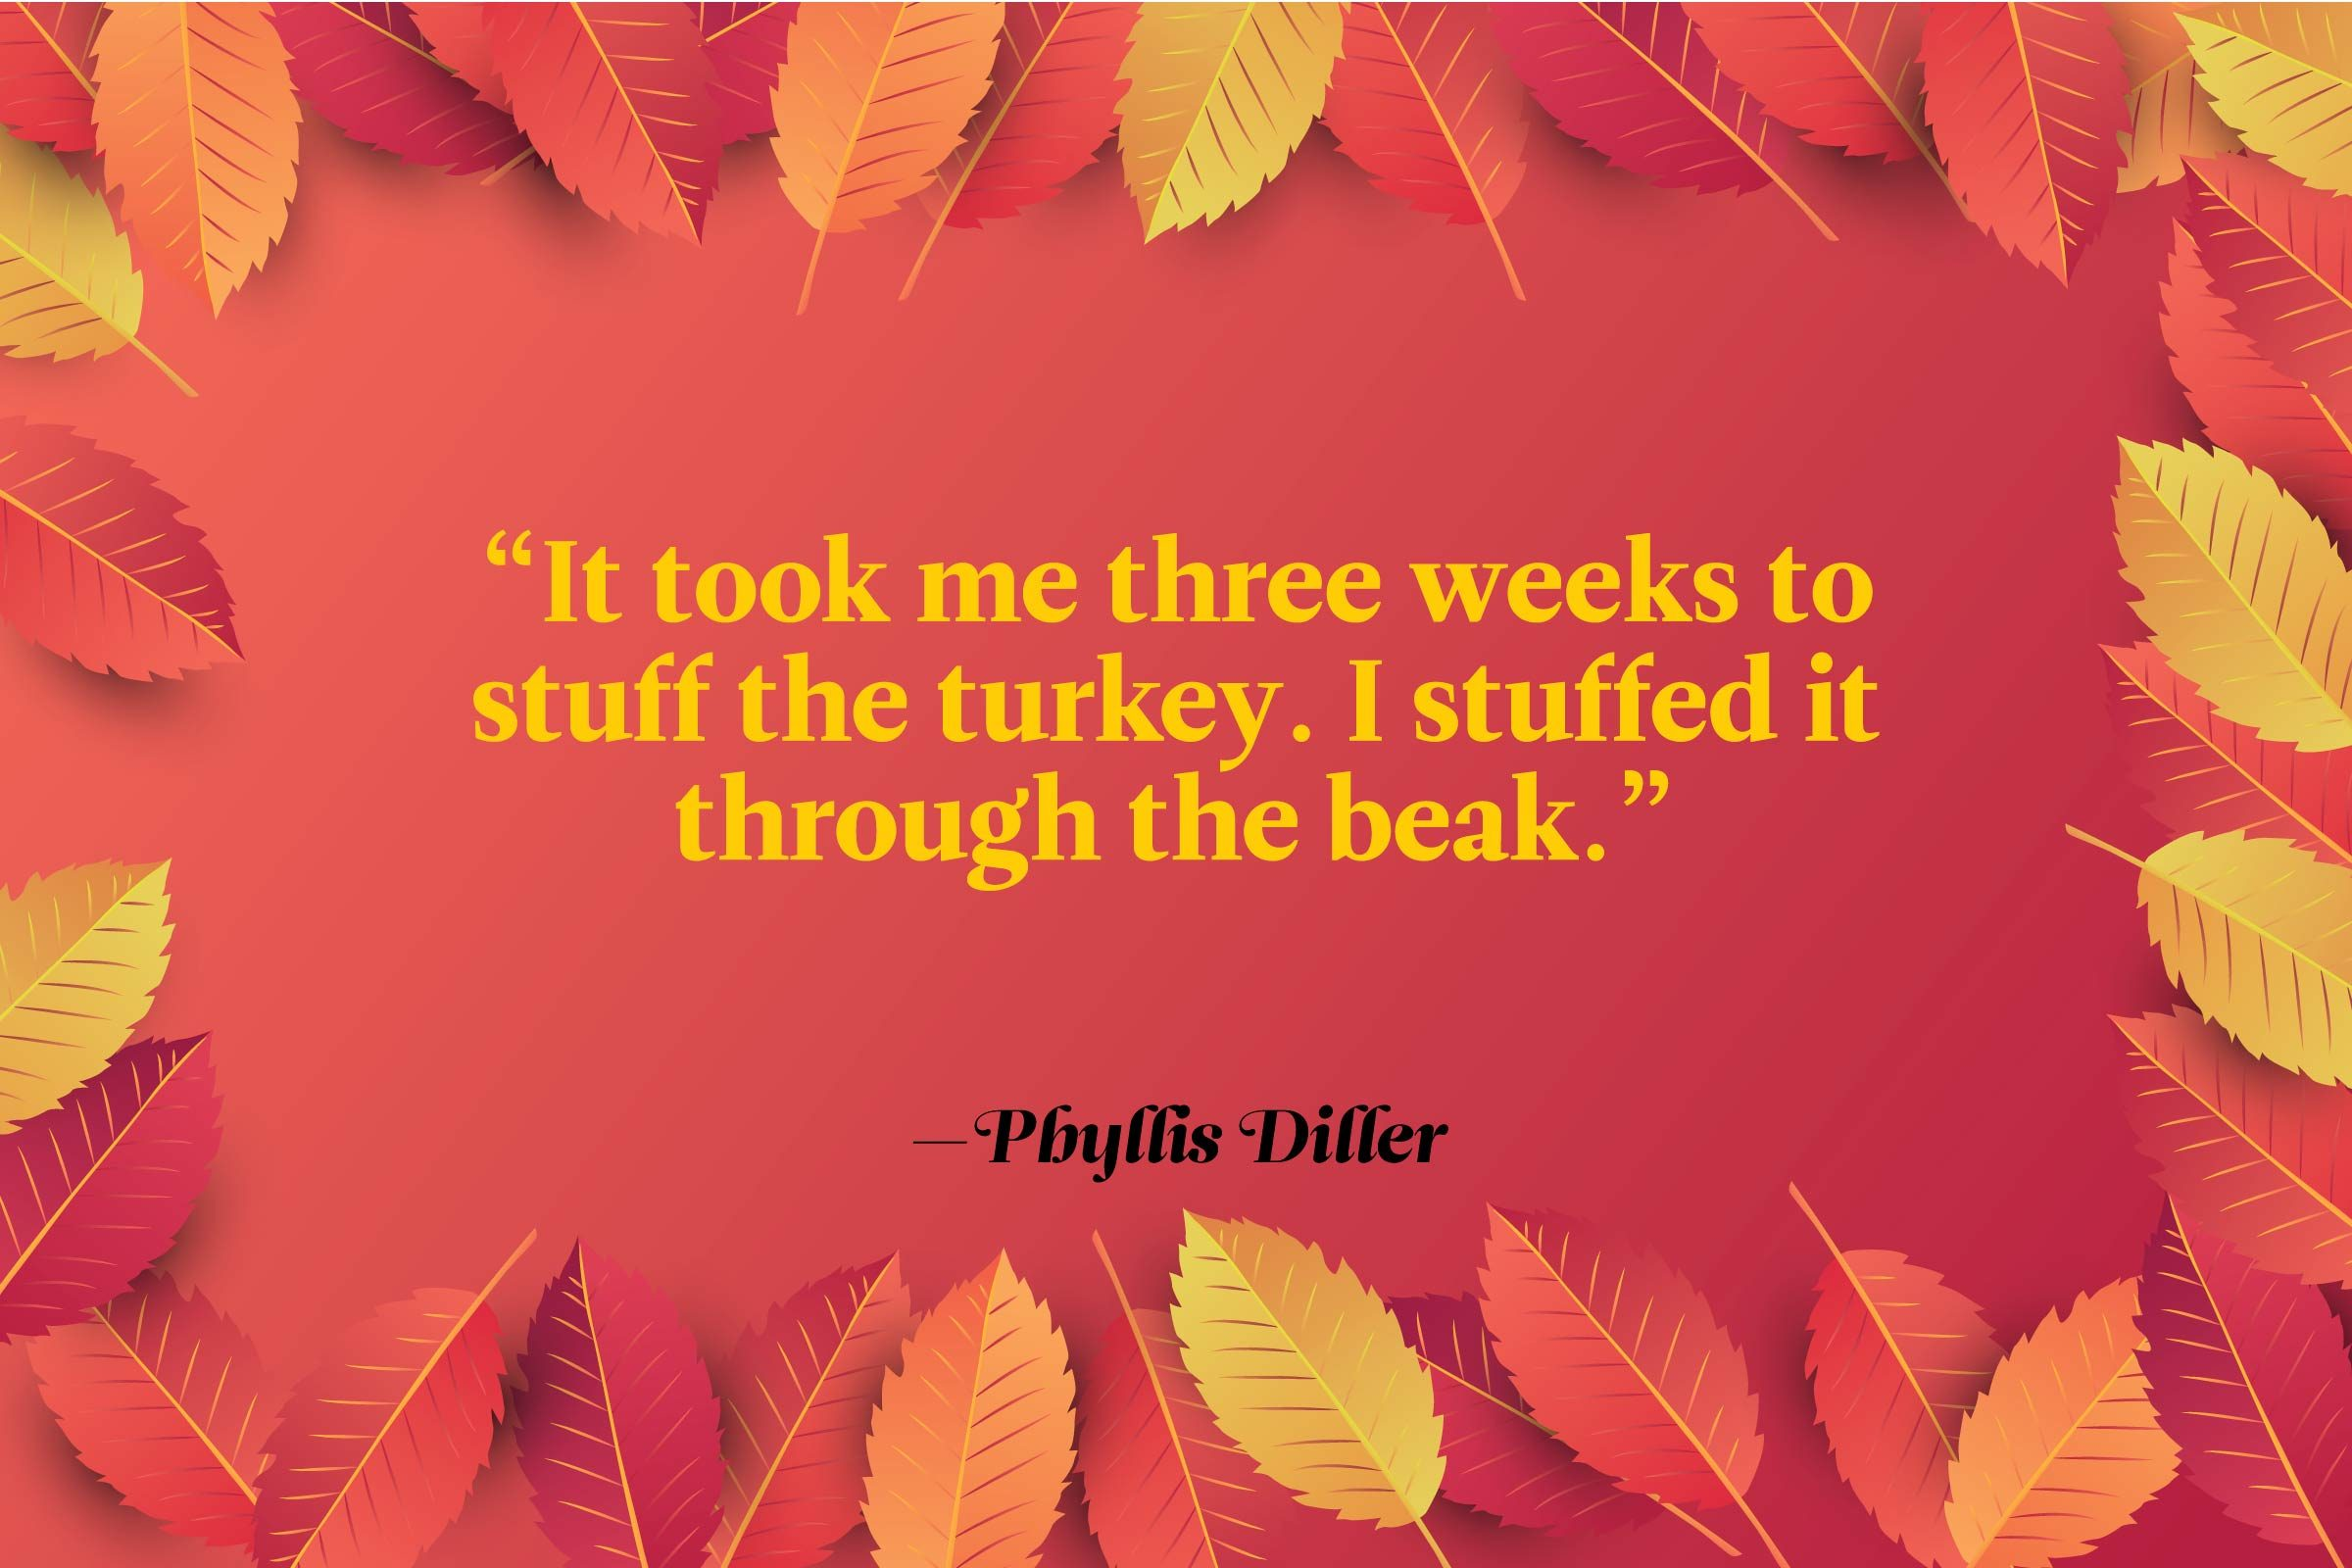 Funny Thanksgiving Quotes - Phyllis Diller